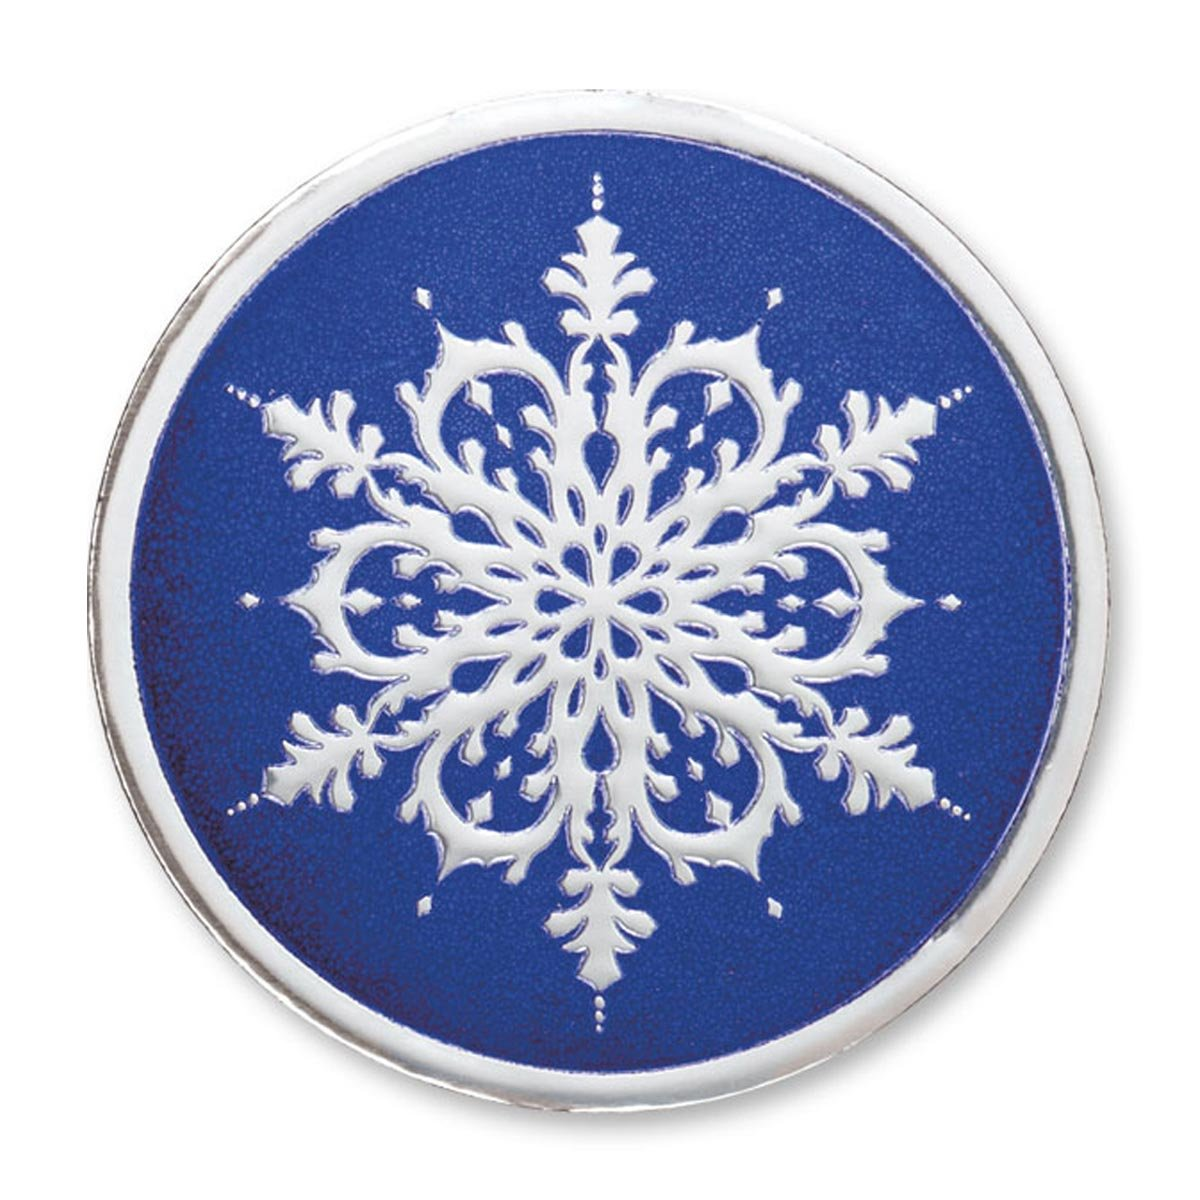 Embossed Elegant Holiday Snowflake Round Silver/Blue Foil Seals, 1 ¼ Inches, Self Adhesive, 48 Count